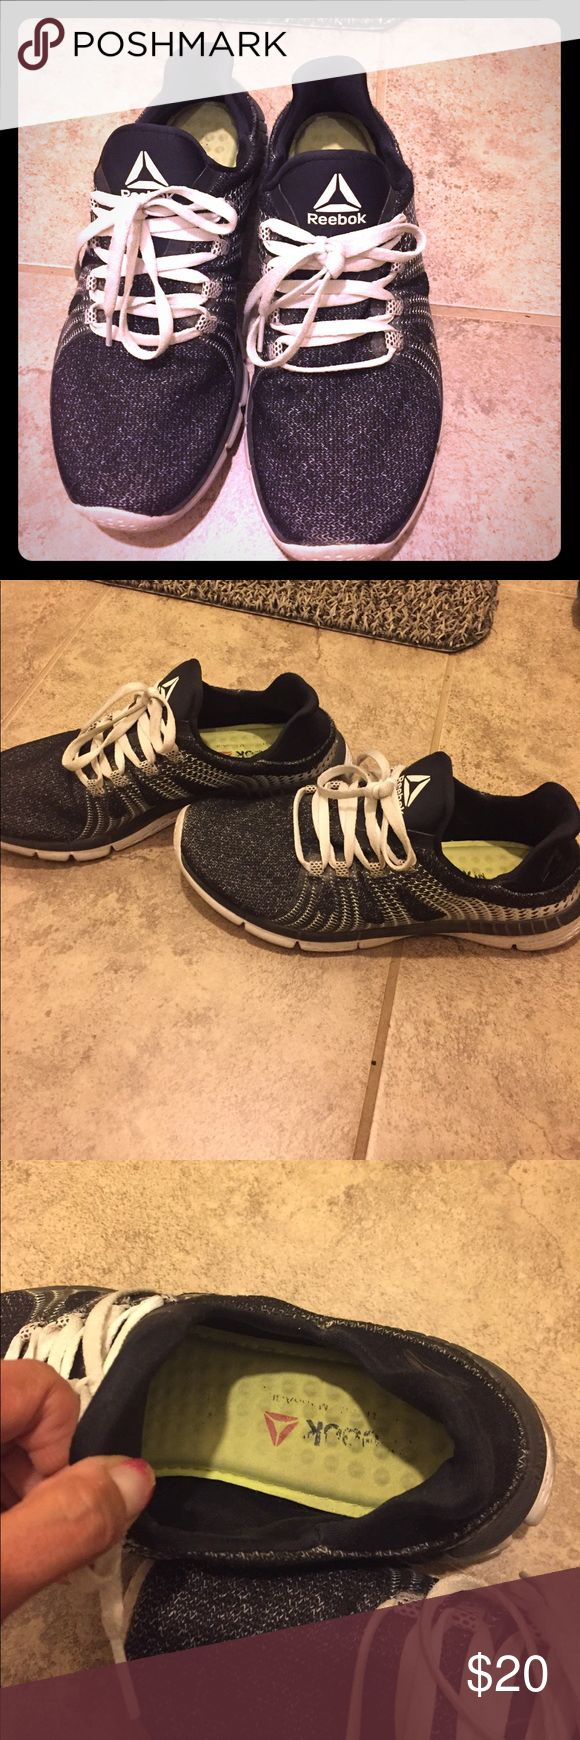 Reebok memory foam shoe This is size 8 Reebok memory foam shoes inside the foam the writing wore off. The outside is cloth material super trendy and cute. I will wash in the washing machine prior to mailing out Reebok Shoes Athletic Shoes